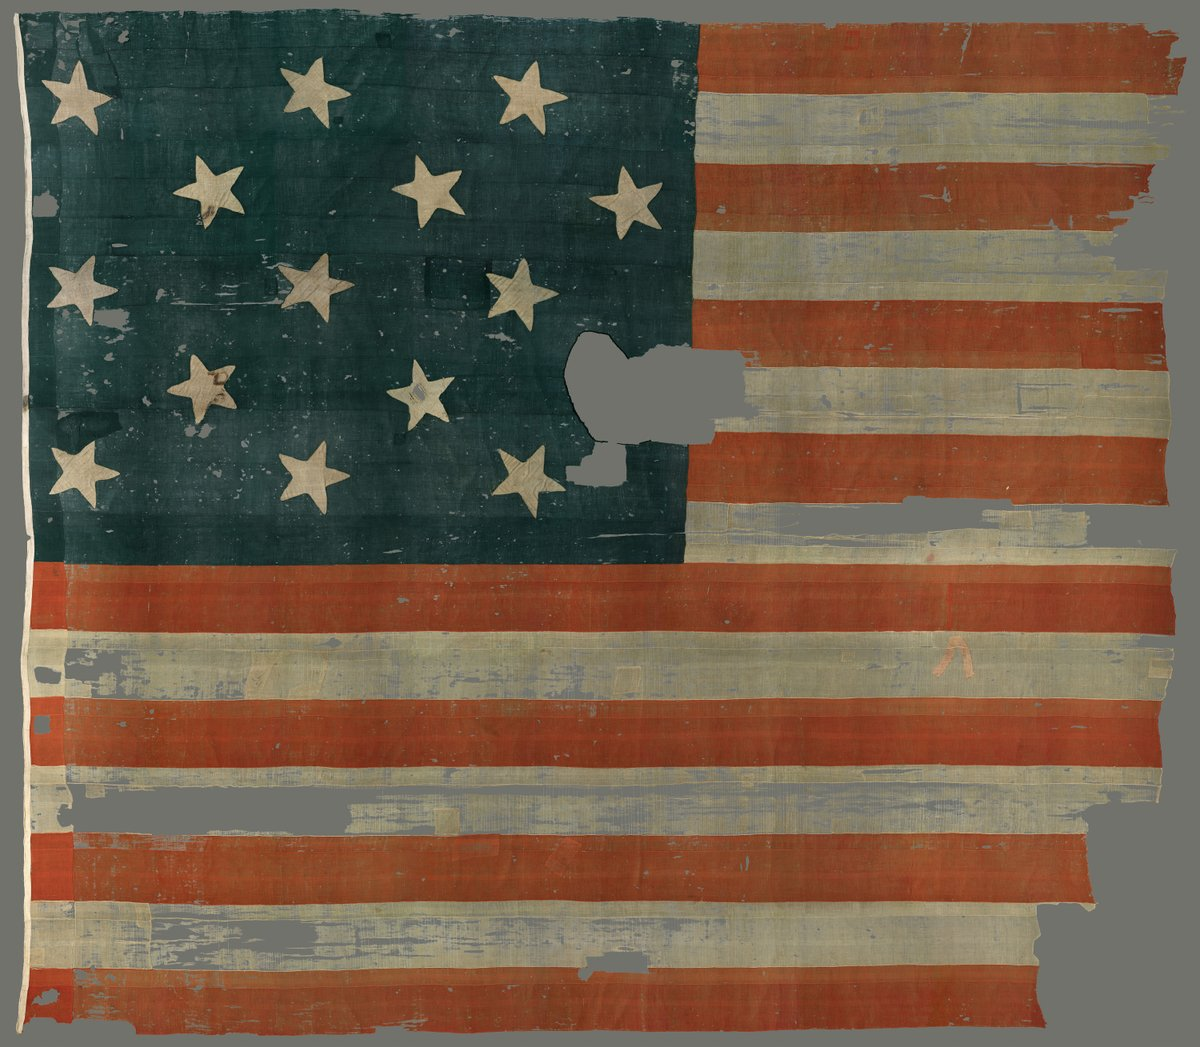 Tomorrow, @amhistorymuseum reopens. In celebration, #beerhistory treasure #67 is the Star-Spangled Banner, sewn by a 37 yo widowed woman & 4 teenage girls, including Afr. Am. indentured servant Grace Wisher, on the floor of a Baltimore brewery's malthouse. #smithsonianfood #beer https://t.co/cp5jHSt04k